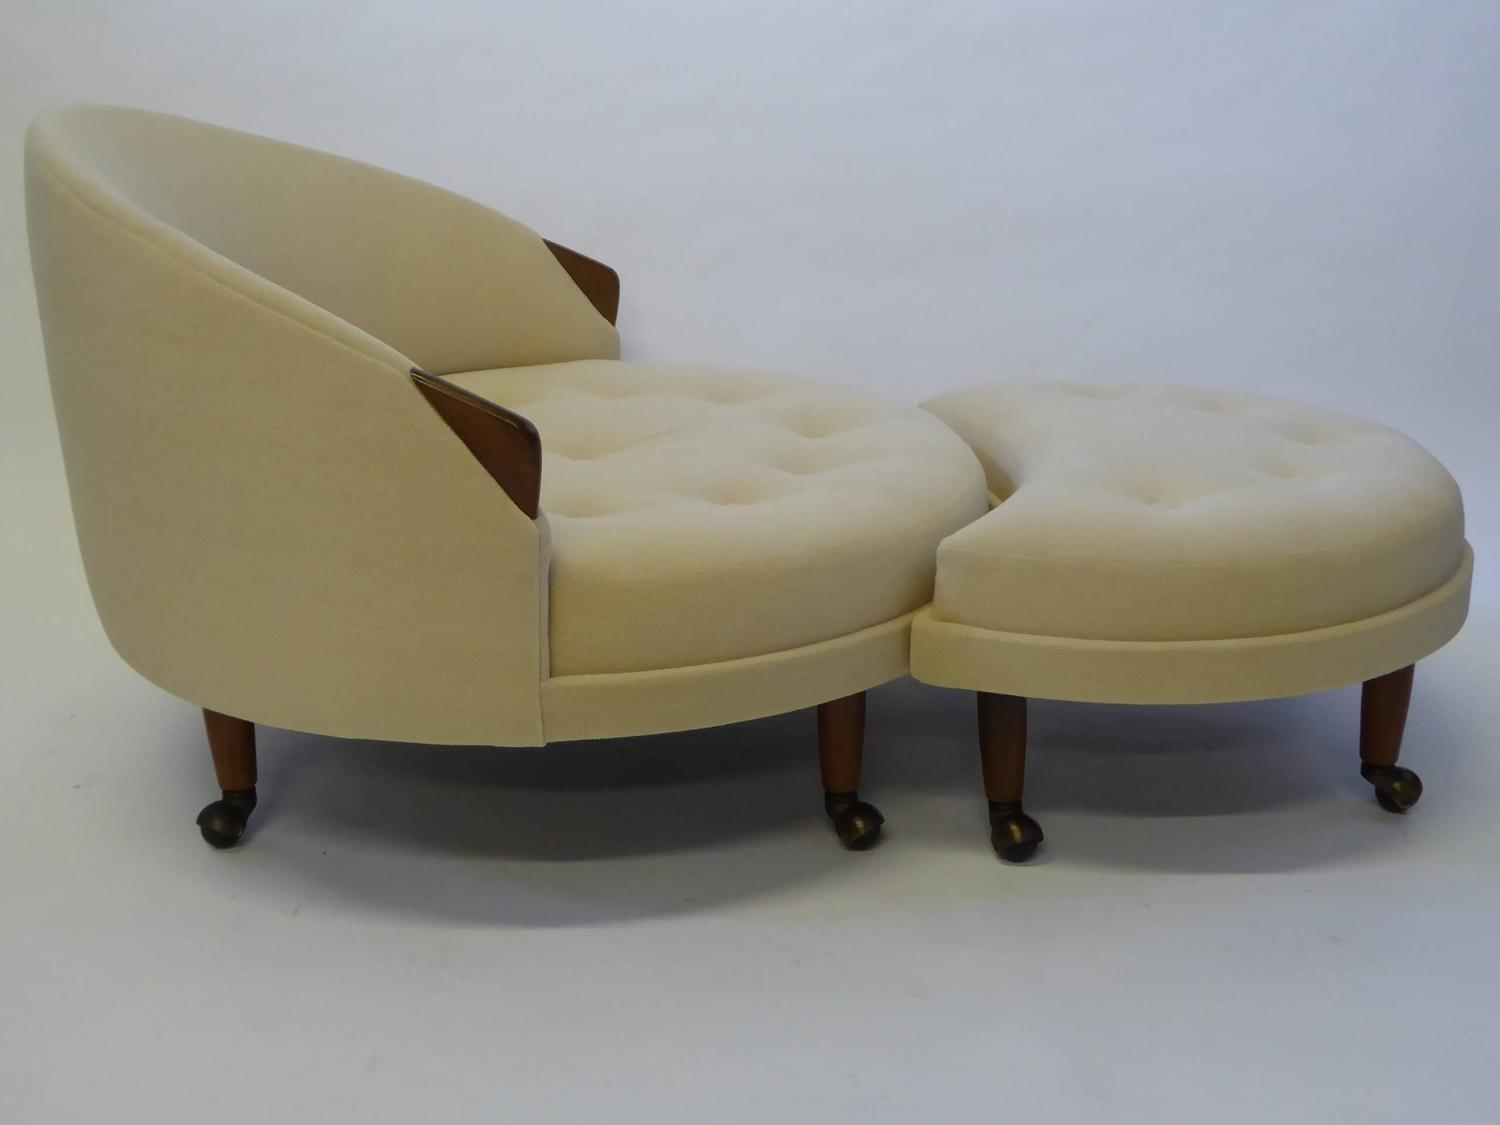 Superb Adrian Pearsall Round Lounge Chair with Fitted Ottoman at 1stdibs